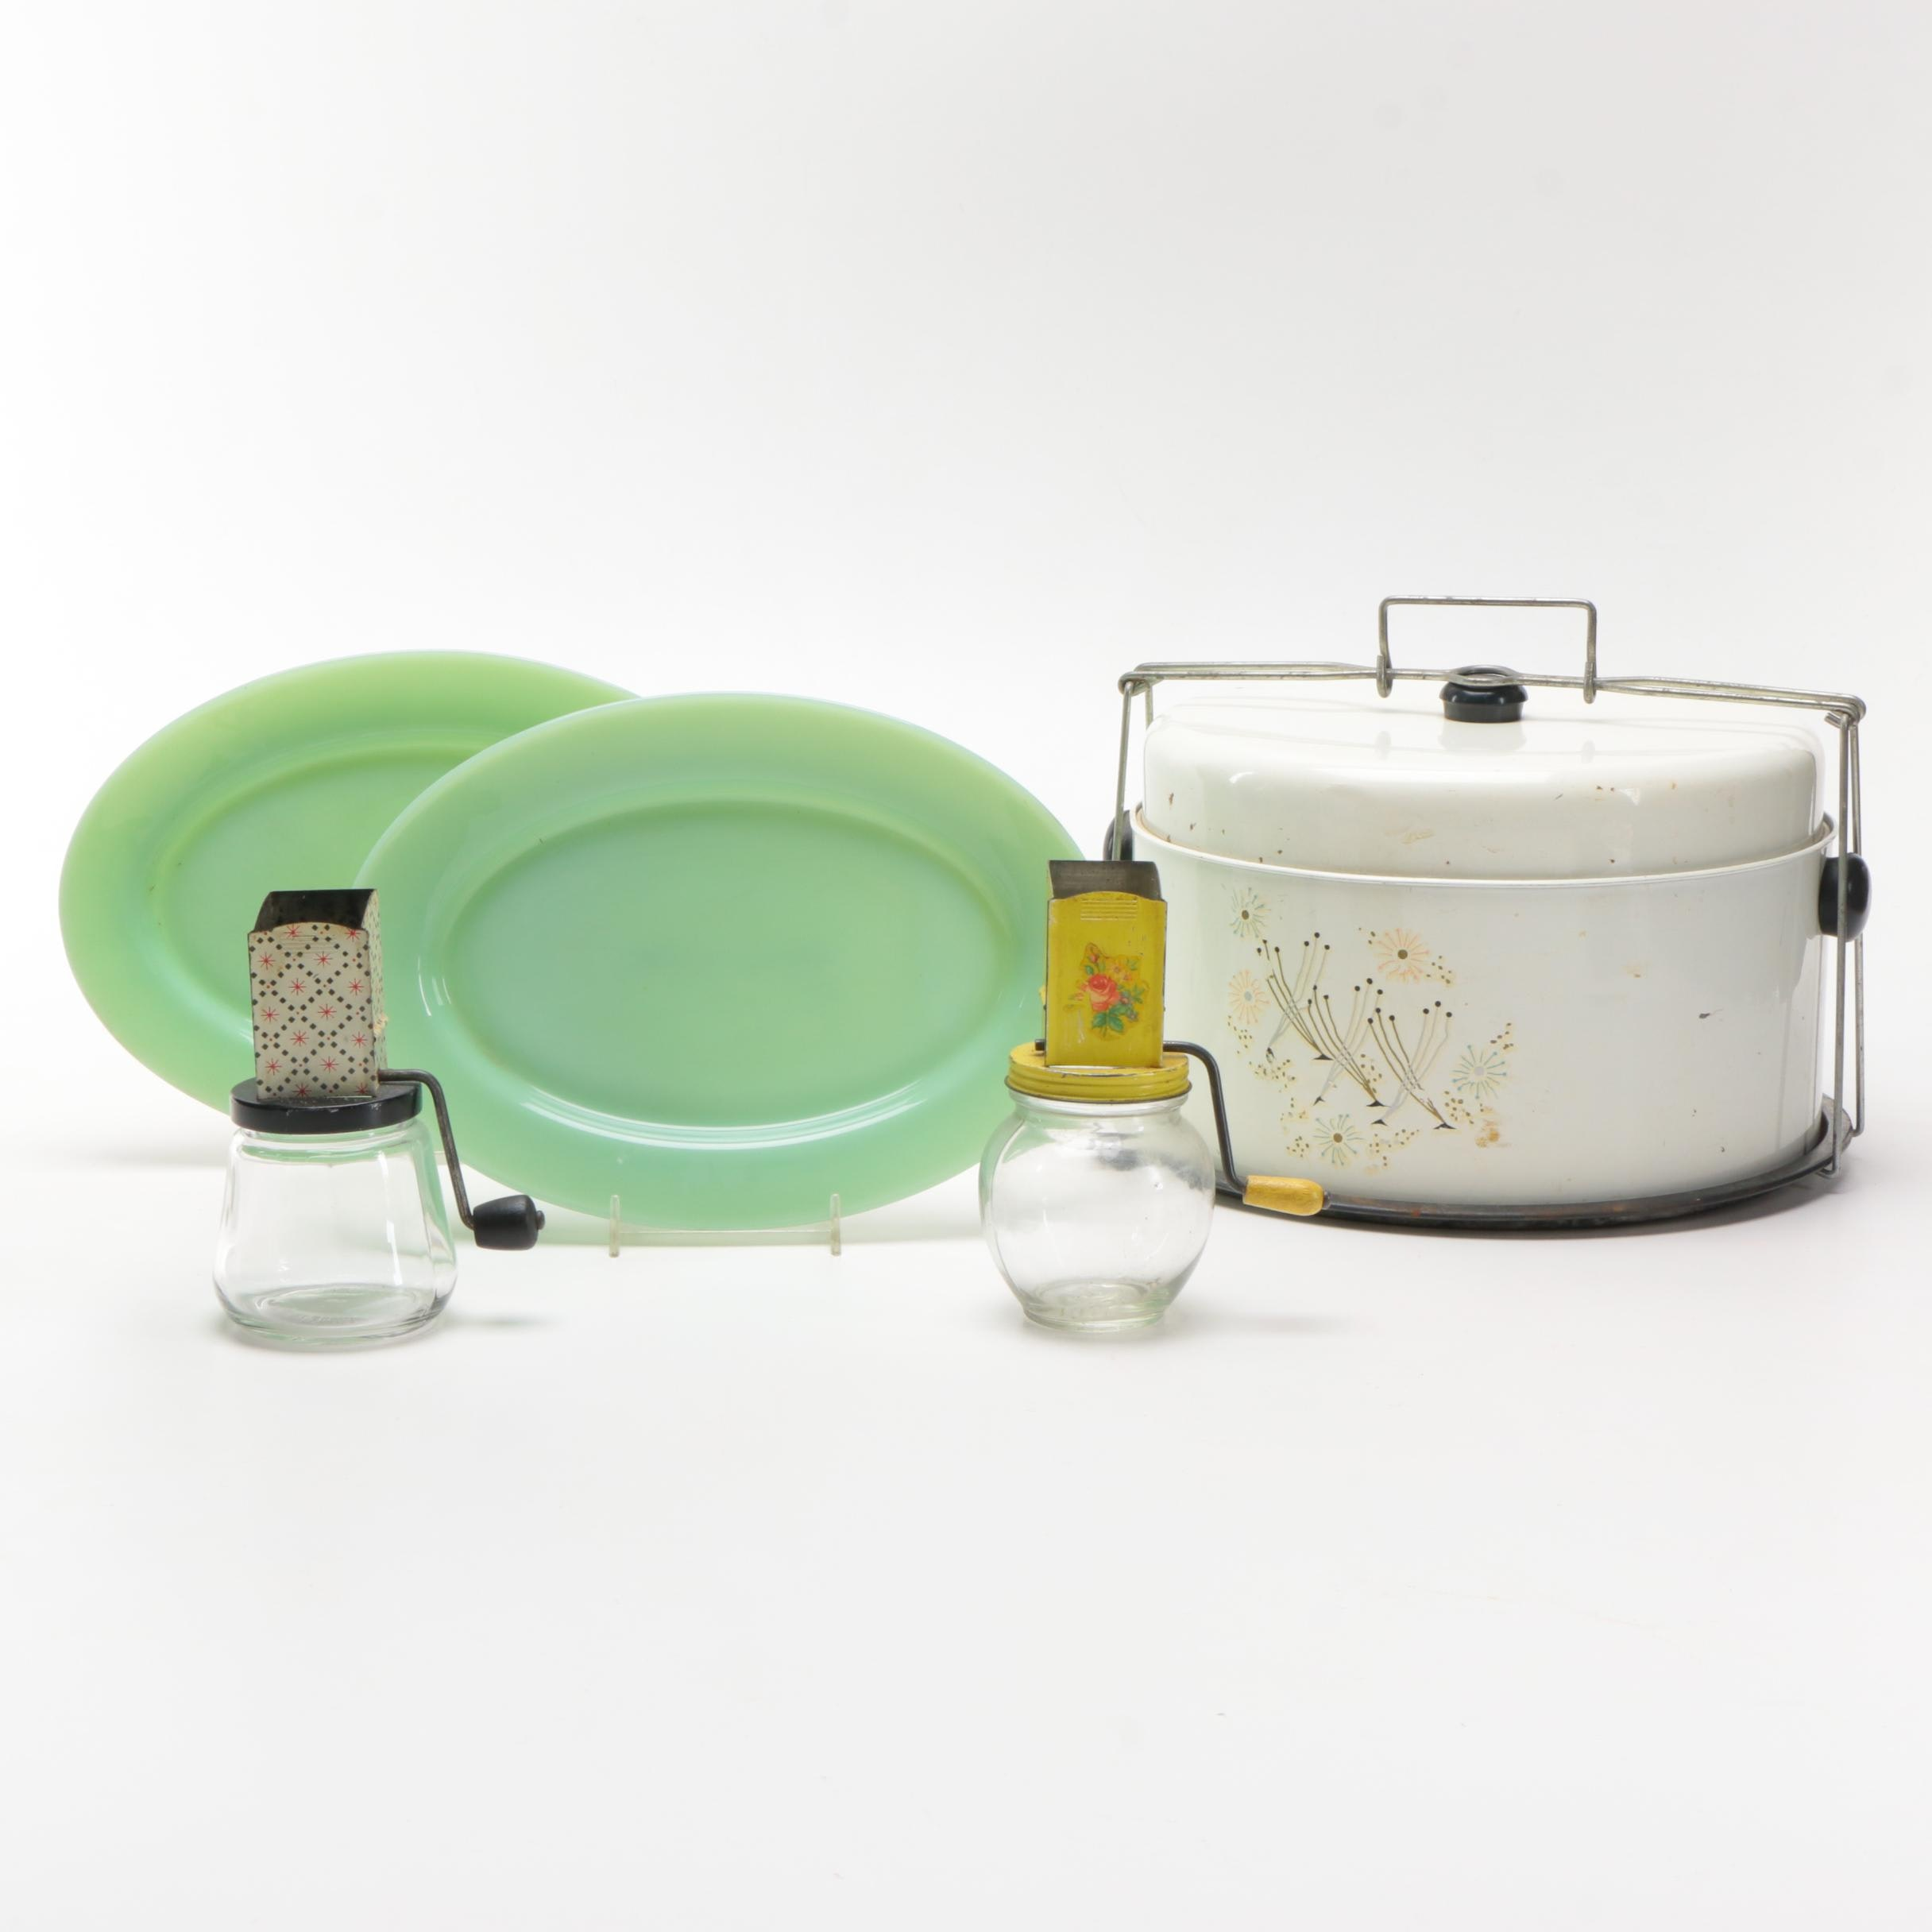 Kitchenware Featuring Fire King